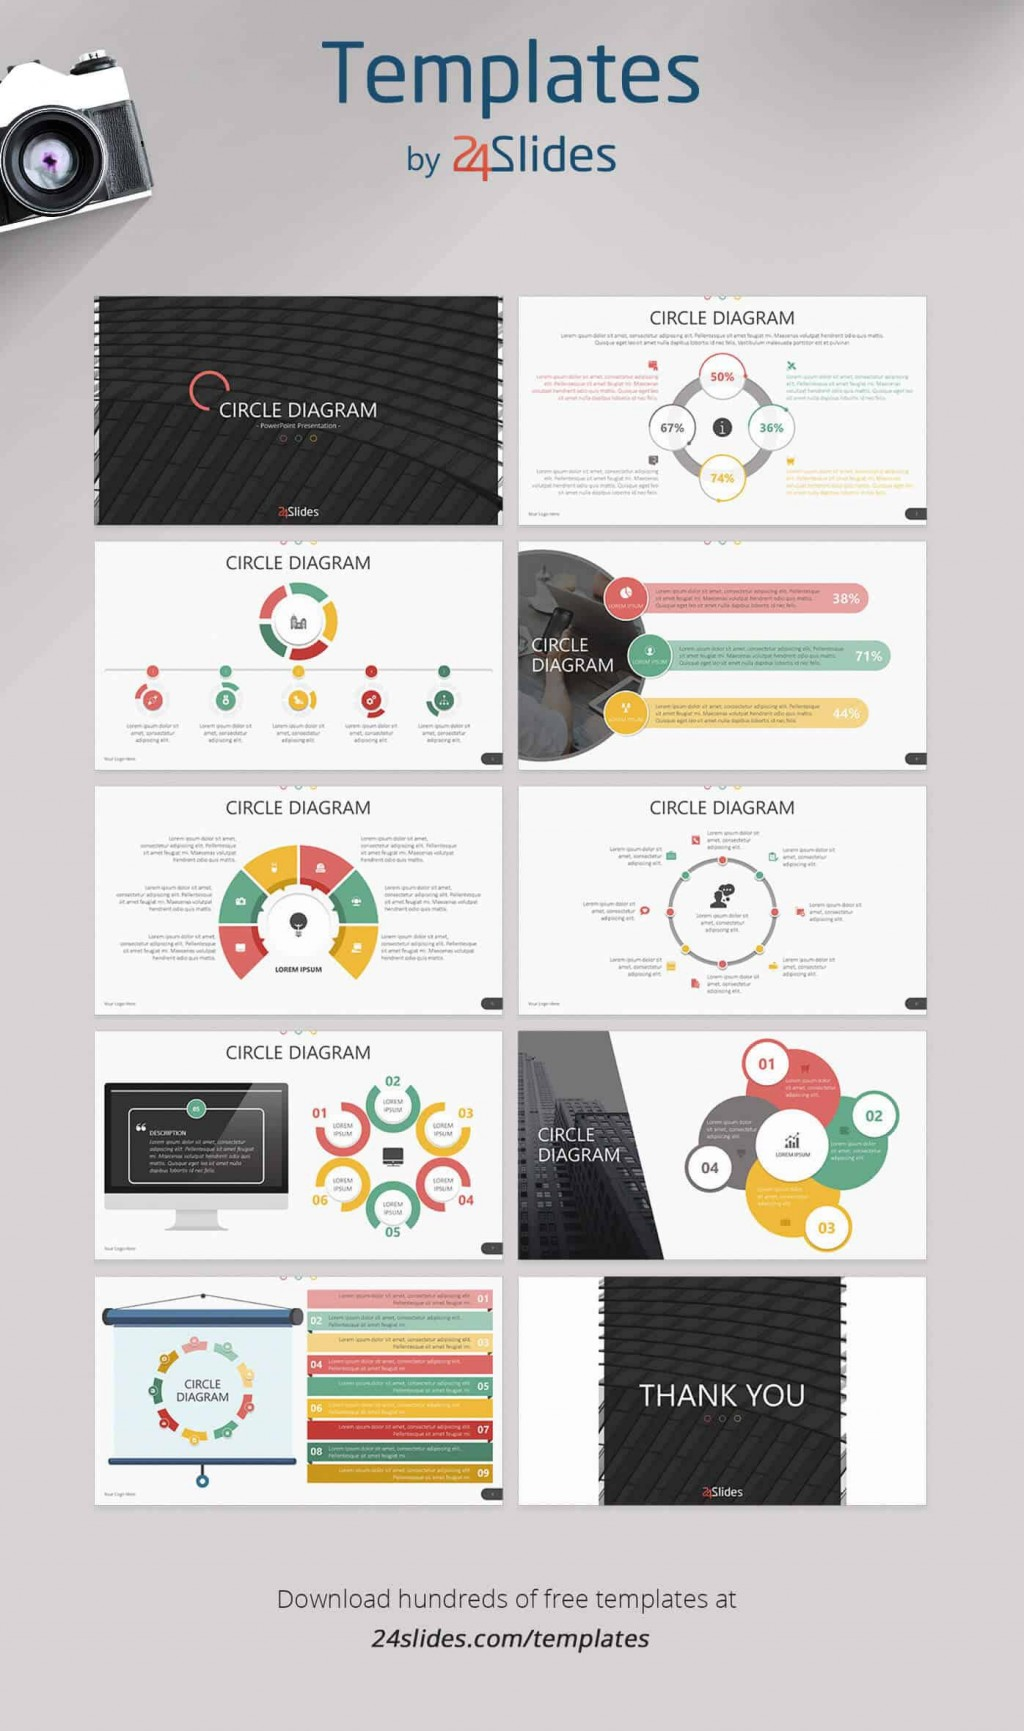 000 Impressive Free Powerpoint Presentation Template Example  Templates 22 Slide For The Perfect Busines Strategy Download EngineeringLarge